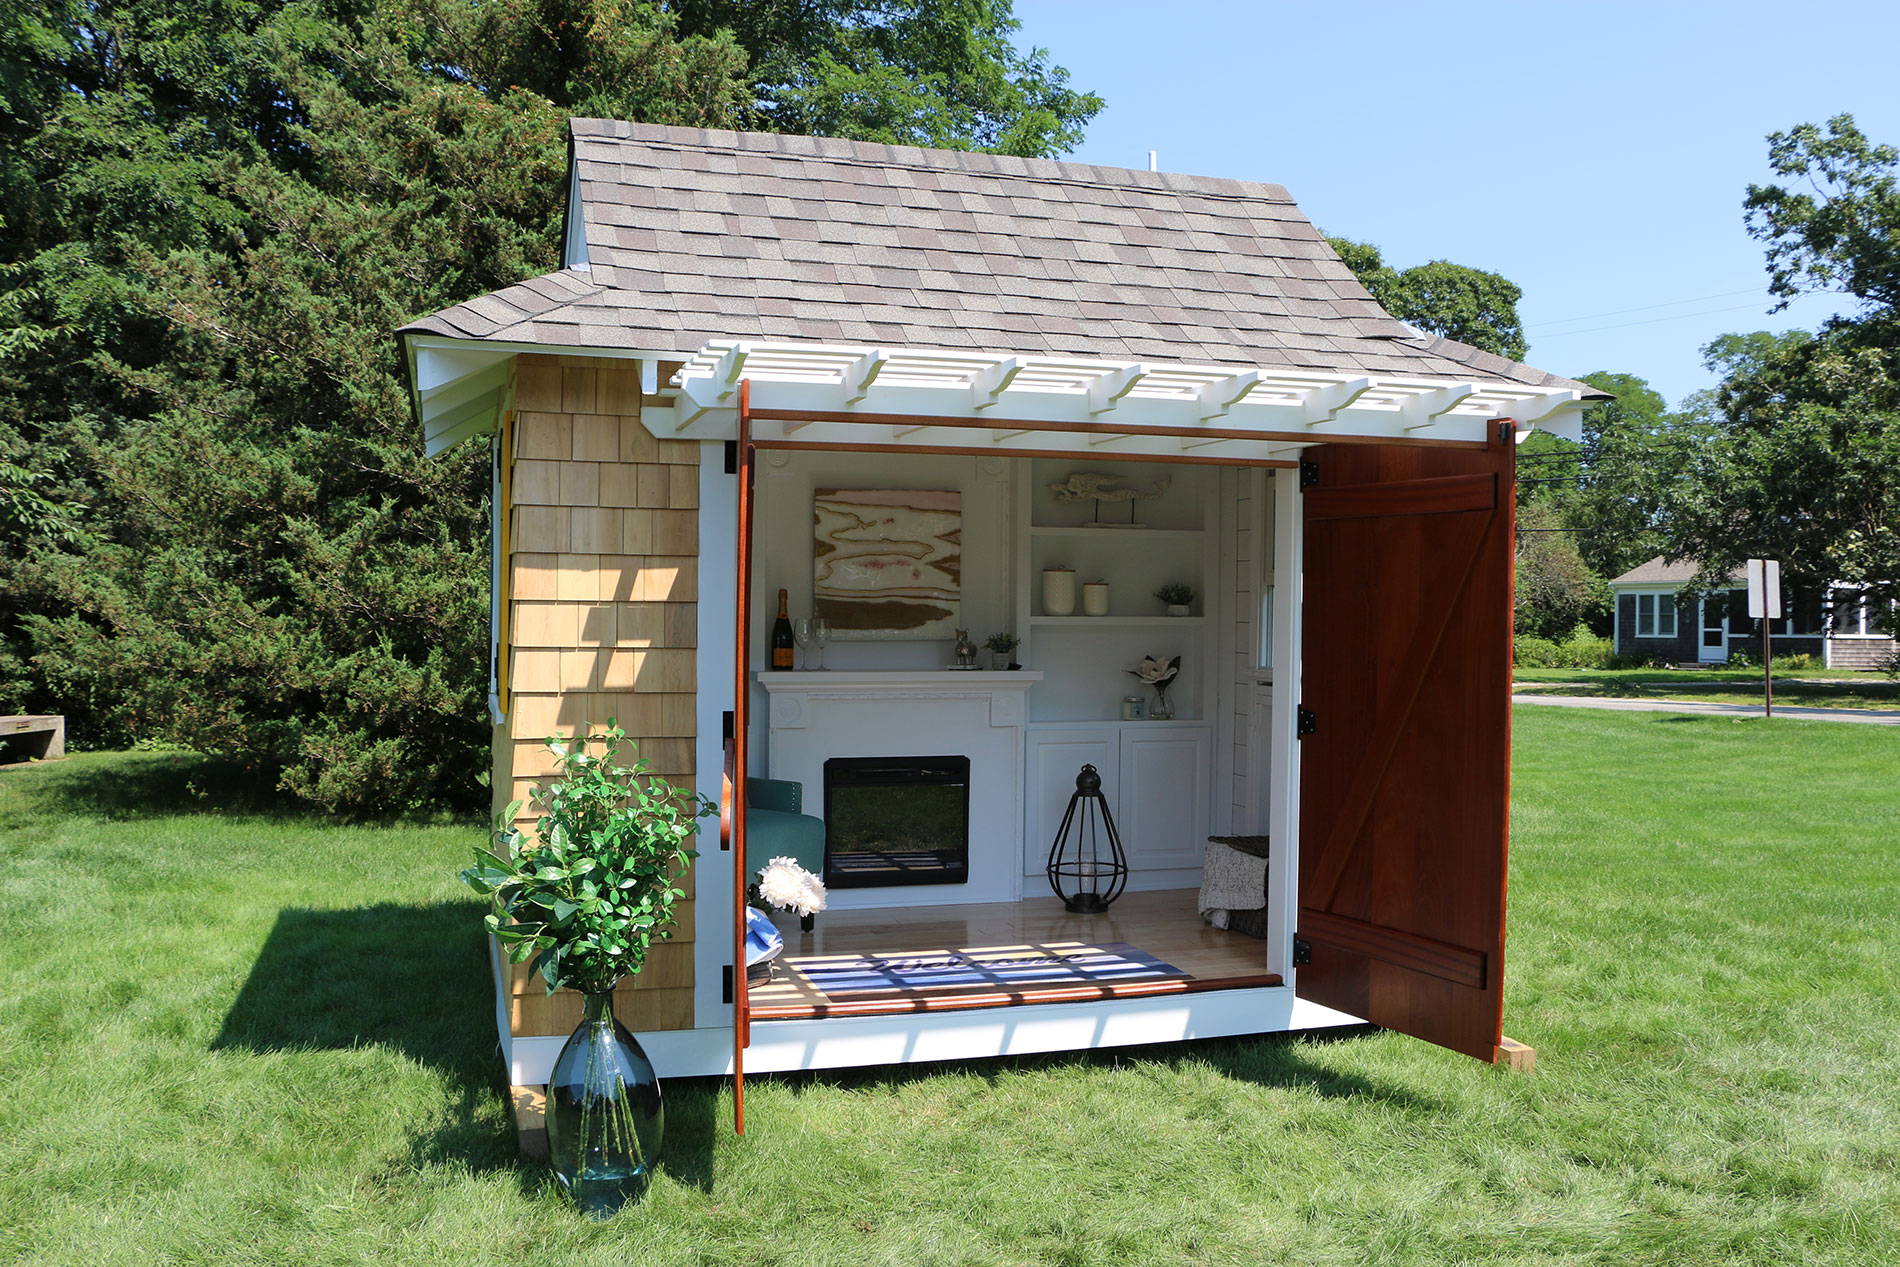 2019 Playhouse - She Shed to benefit Independence House